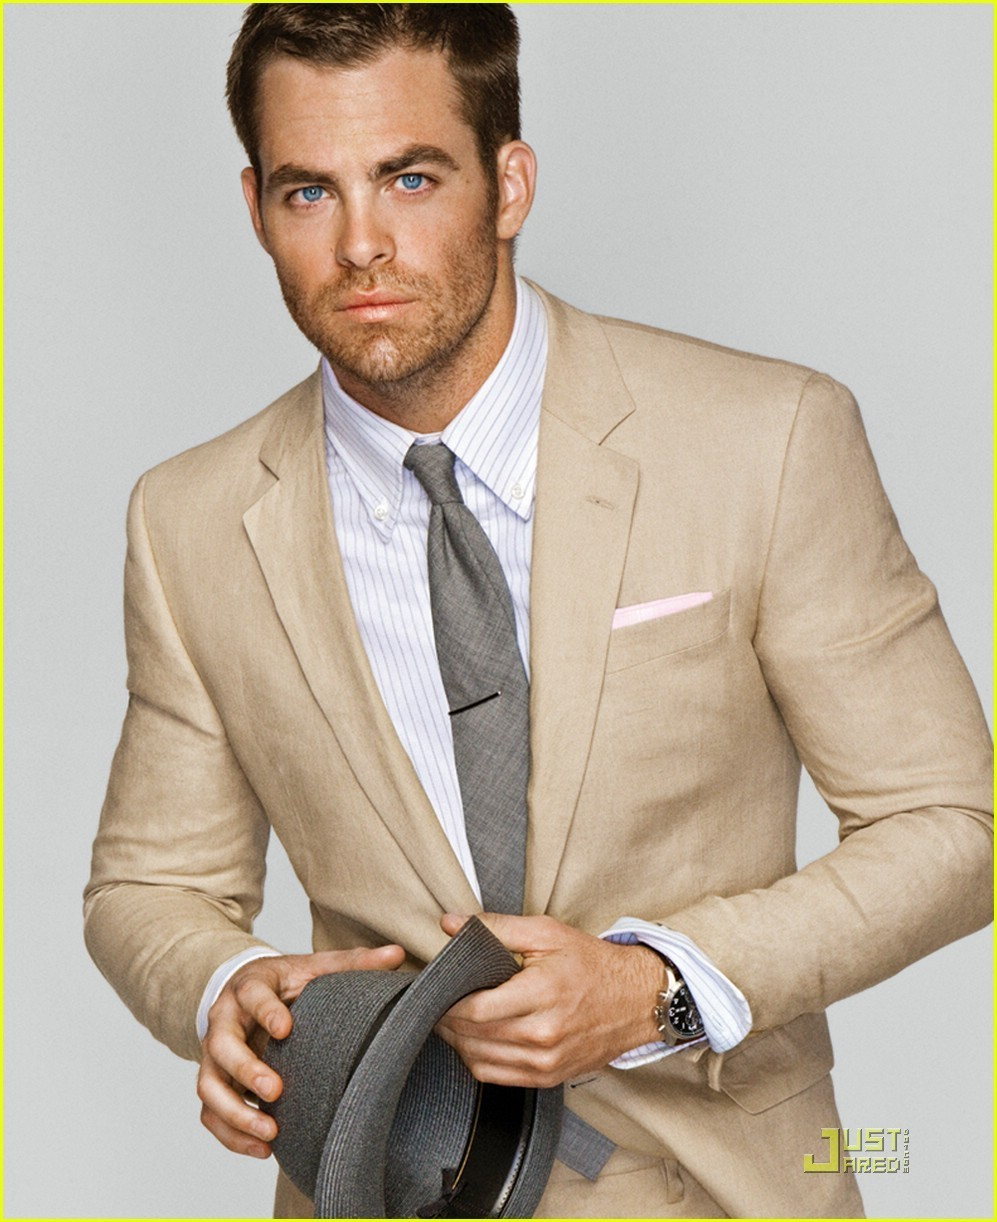 American Actor Chris Pine Photo wallpapers 2012  Top Model Dress Fashion style Photo